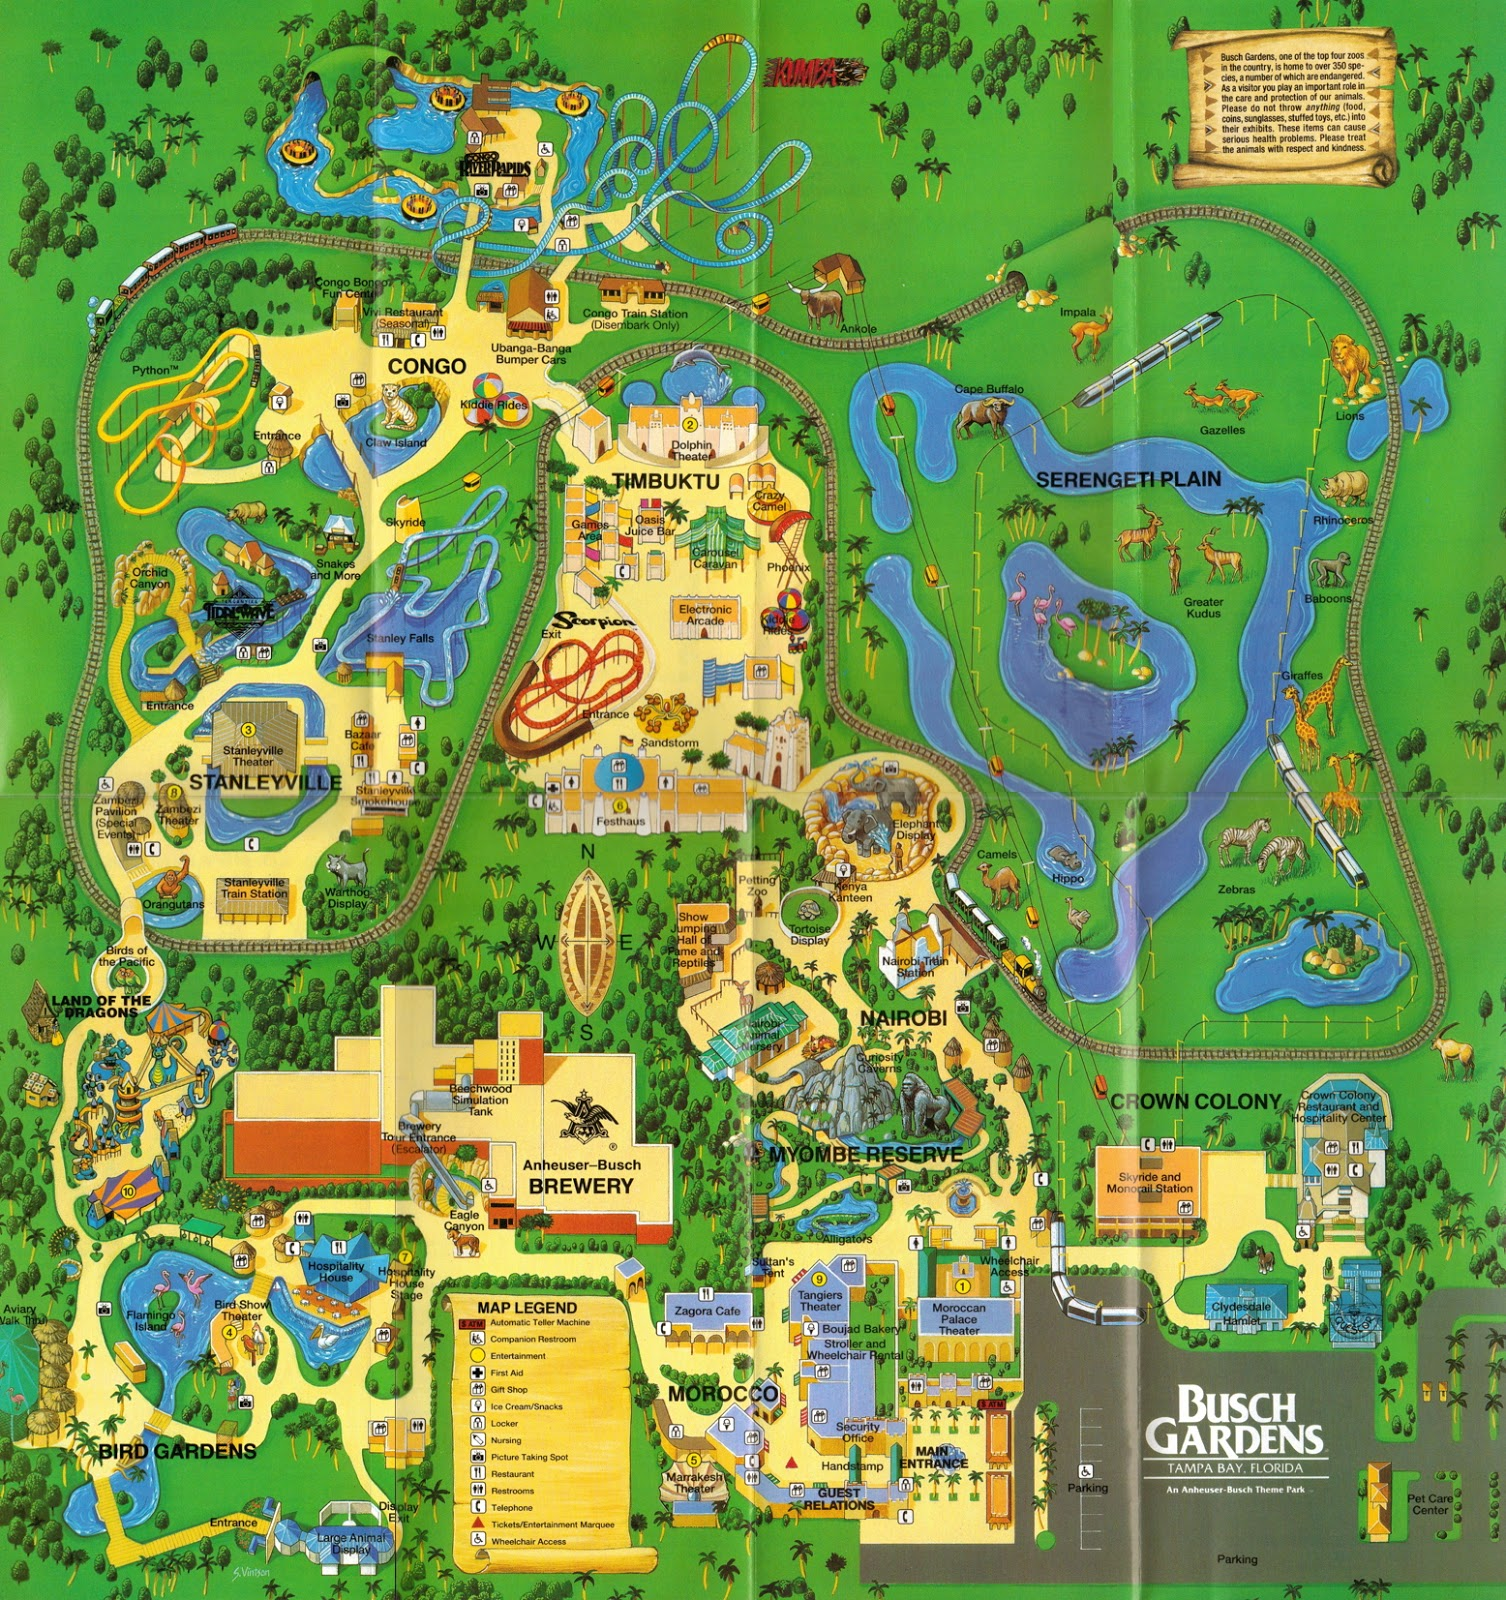 NewsPlusNotes: From The Vault: Busch Gardens Tampa 1995 Map